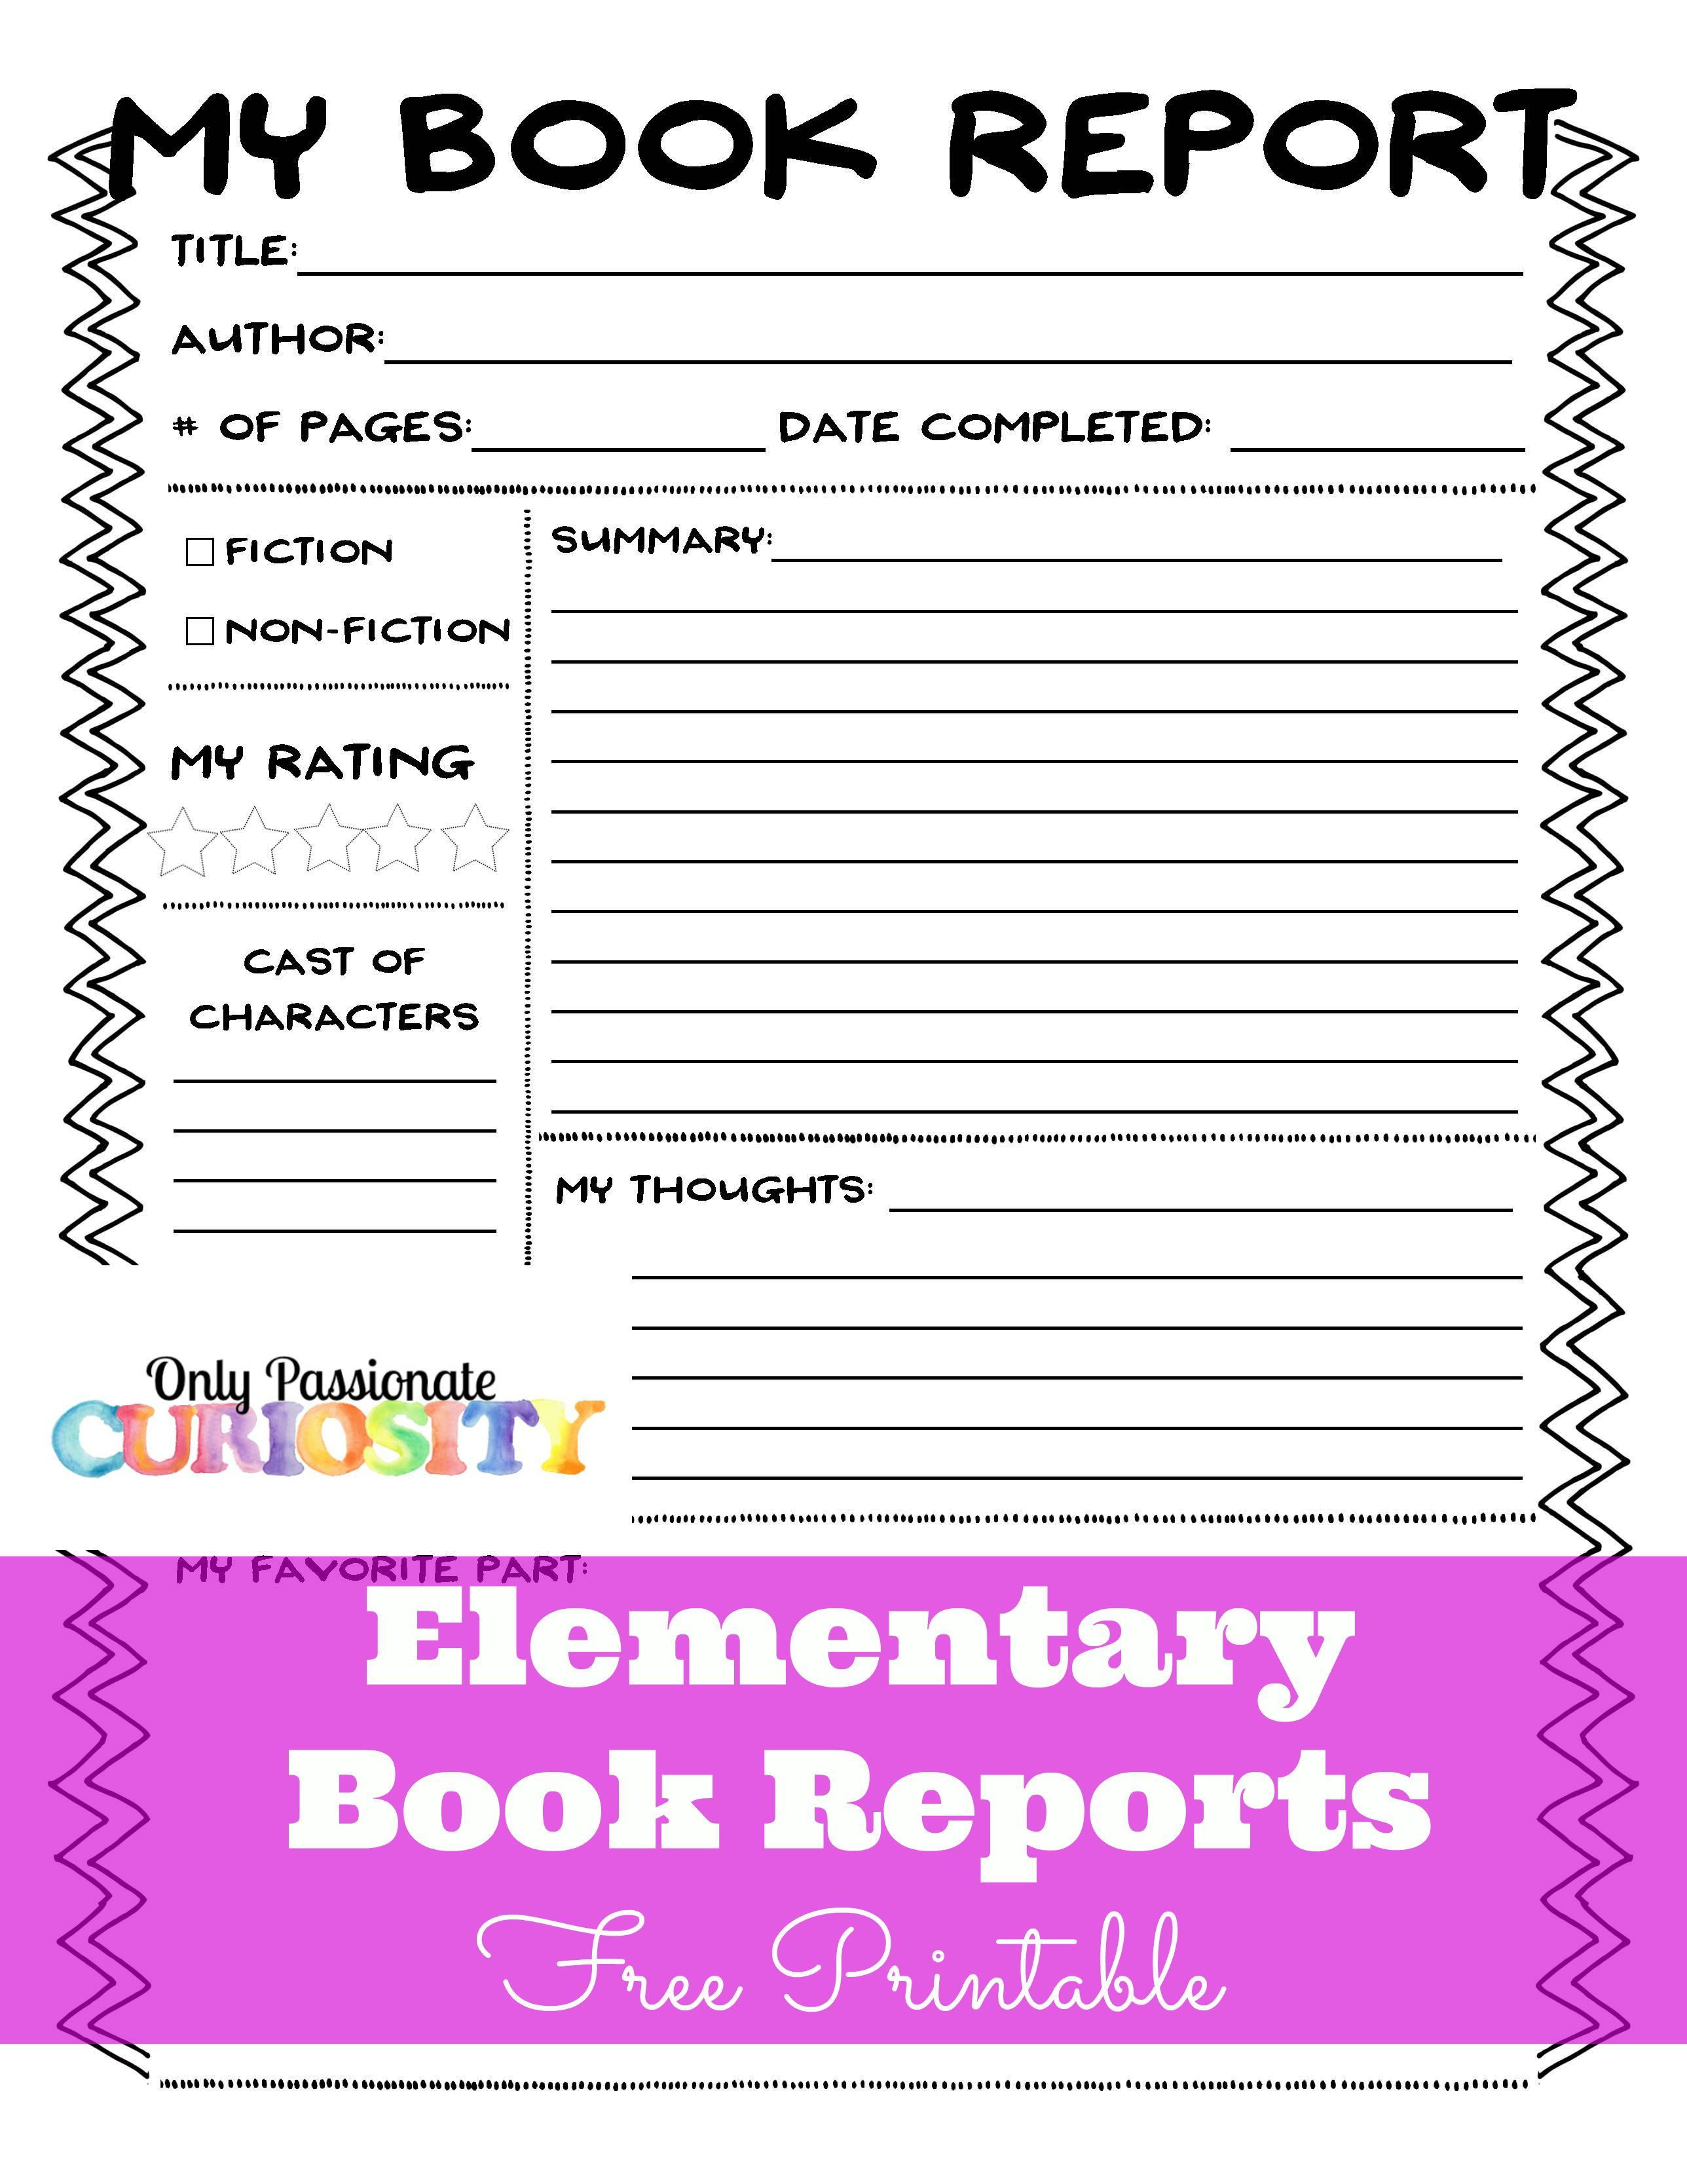 Elementary Book Reports Made Easy